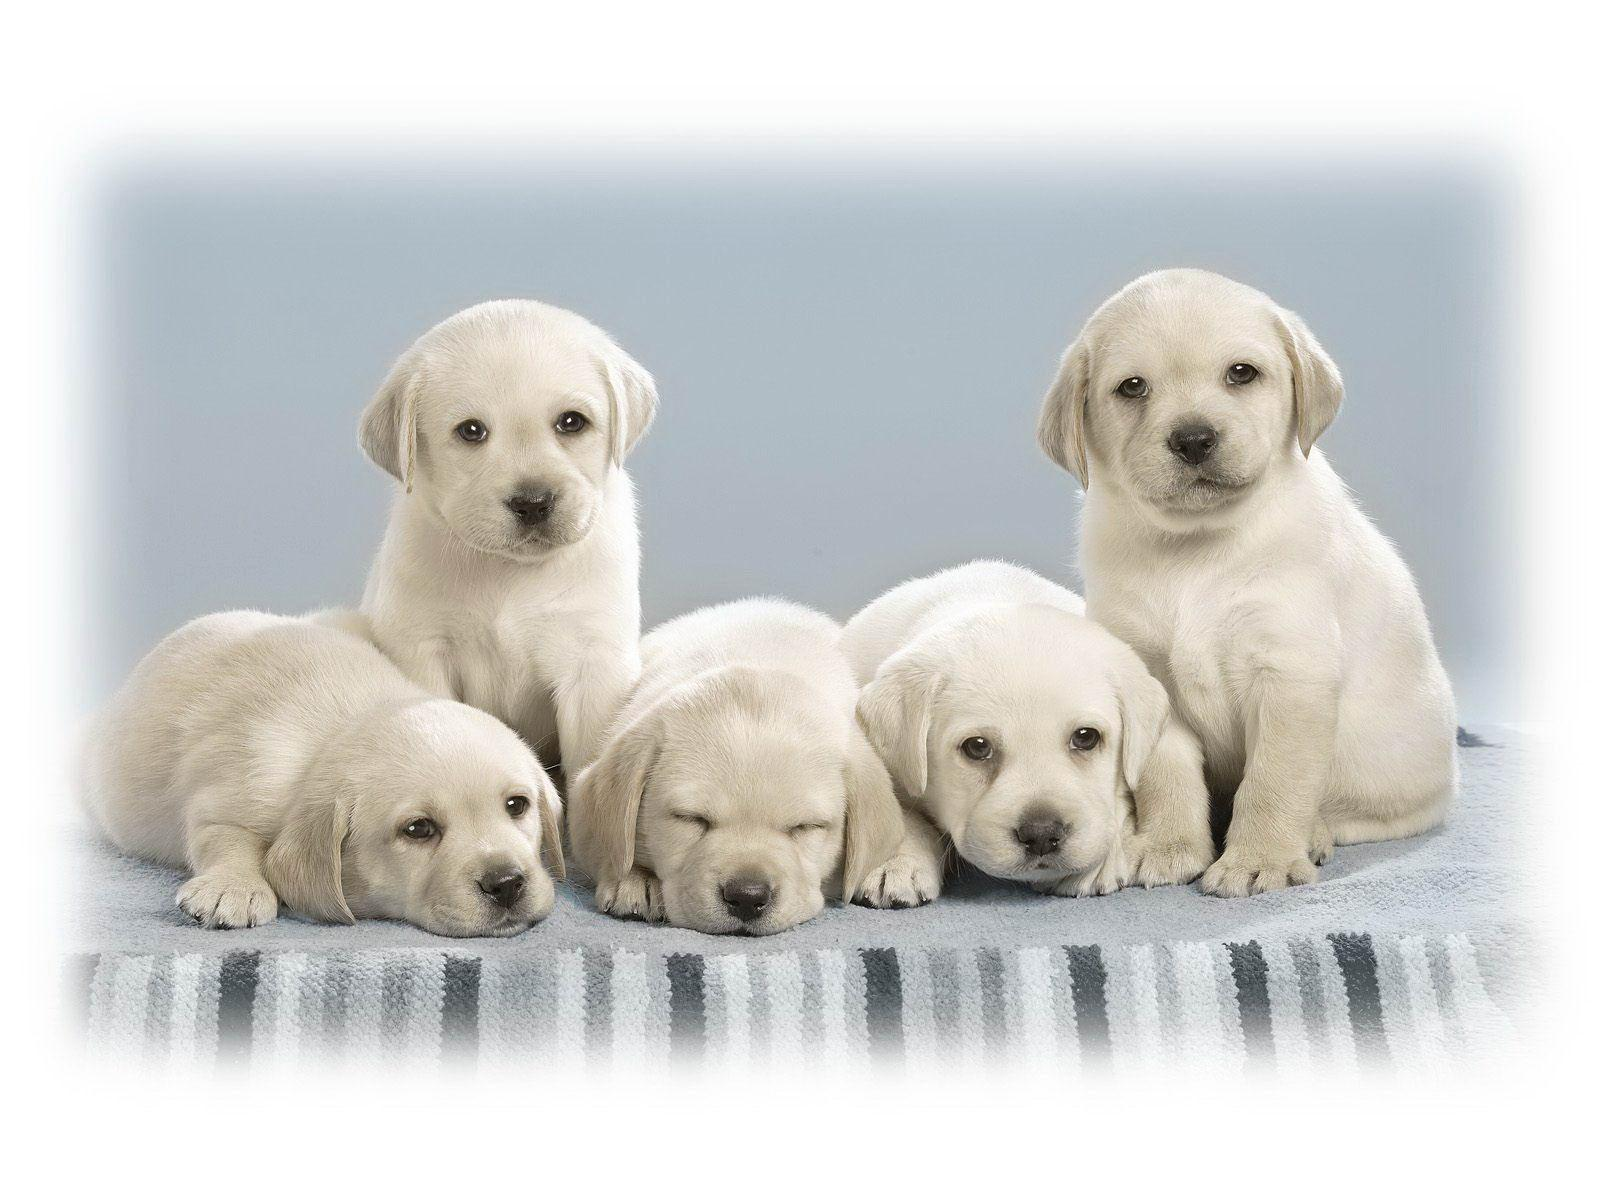 Labrador Retriever H D Wallpapers O ll y WooD !  Wallpapers,